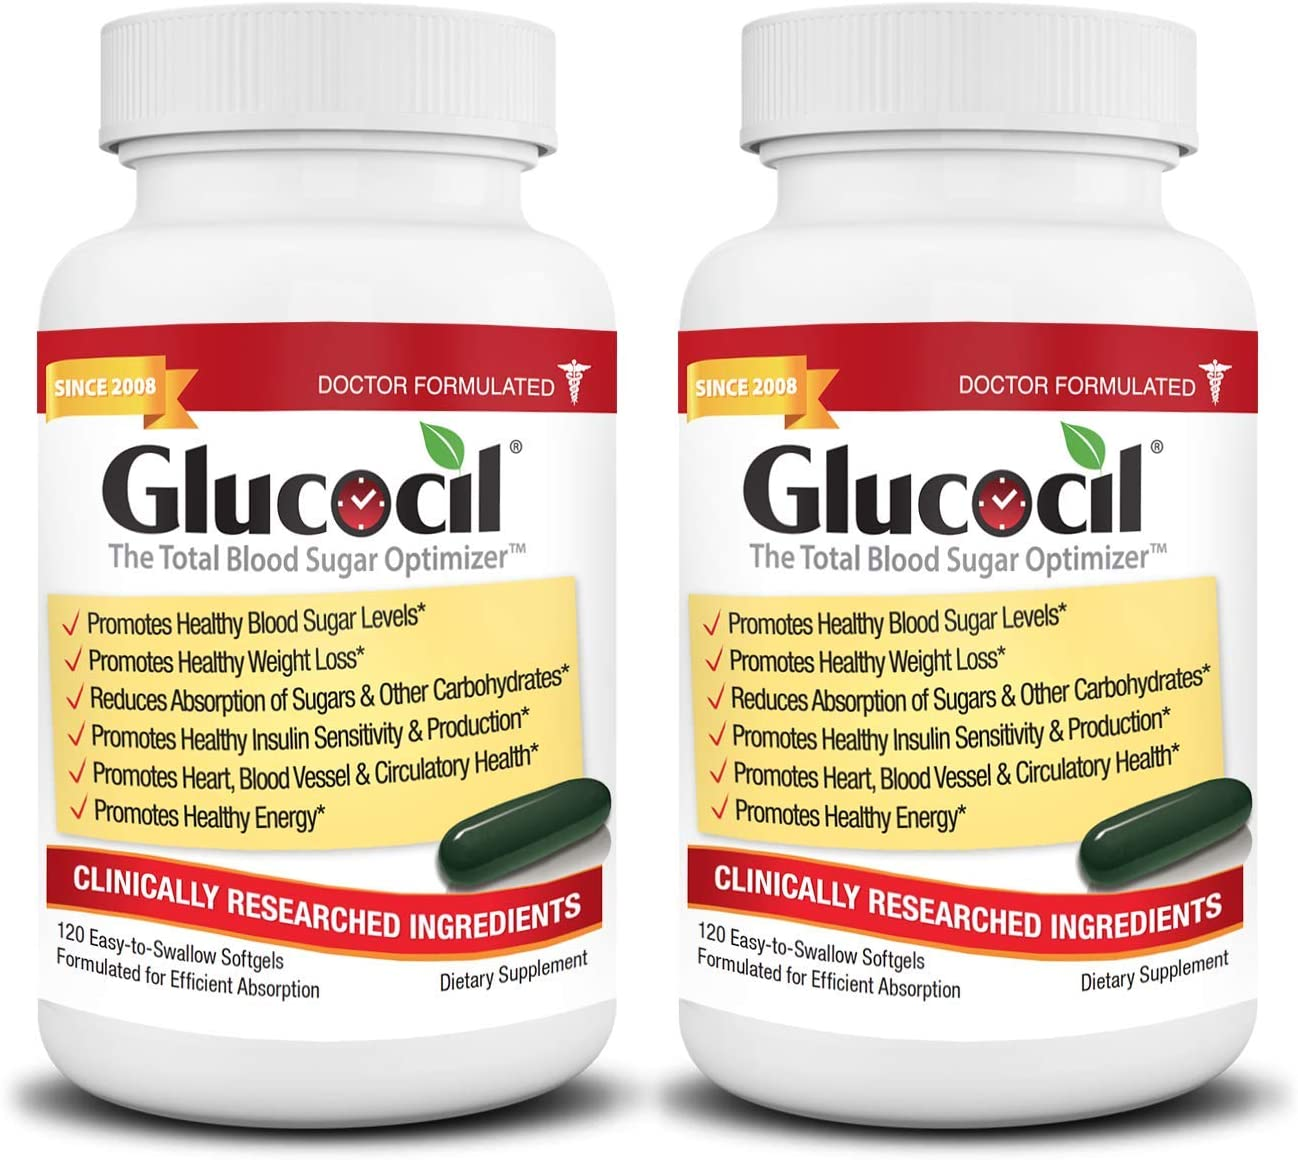 Glucocil - The Total Blood Sugar Optimizer - 1 Million+ Bottles Sold - The Simple Secret of Targeting All 3 Essentials for Normal Blood Sugar, Clinically Proven Ingredients, Trusted Since 2008, 2-Pack